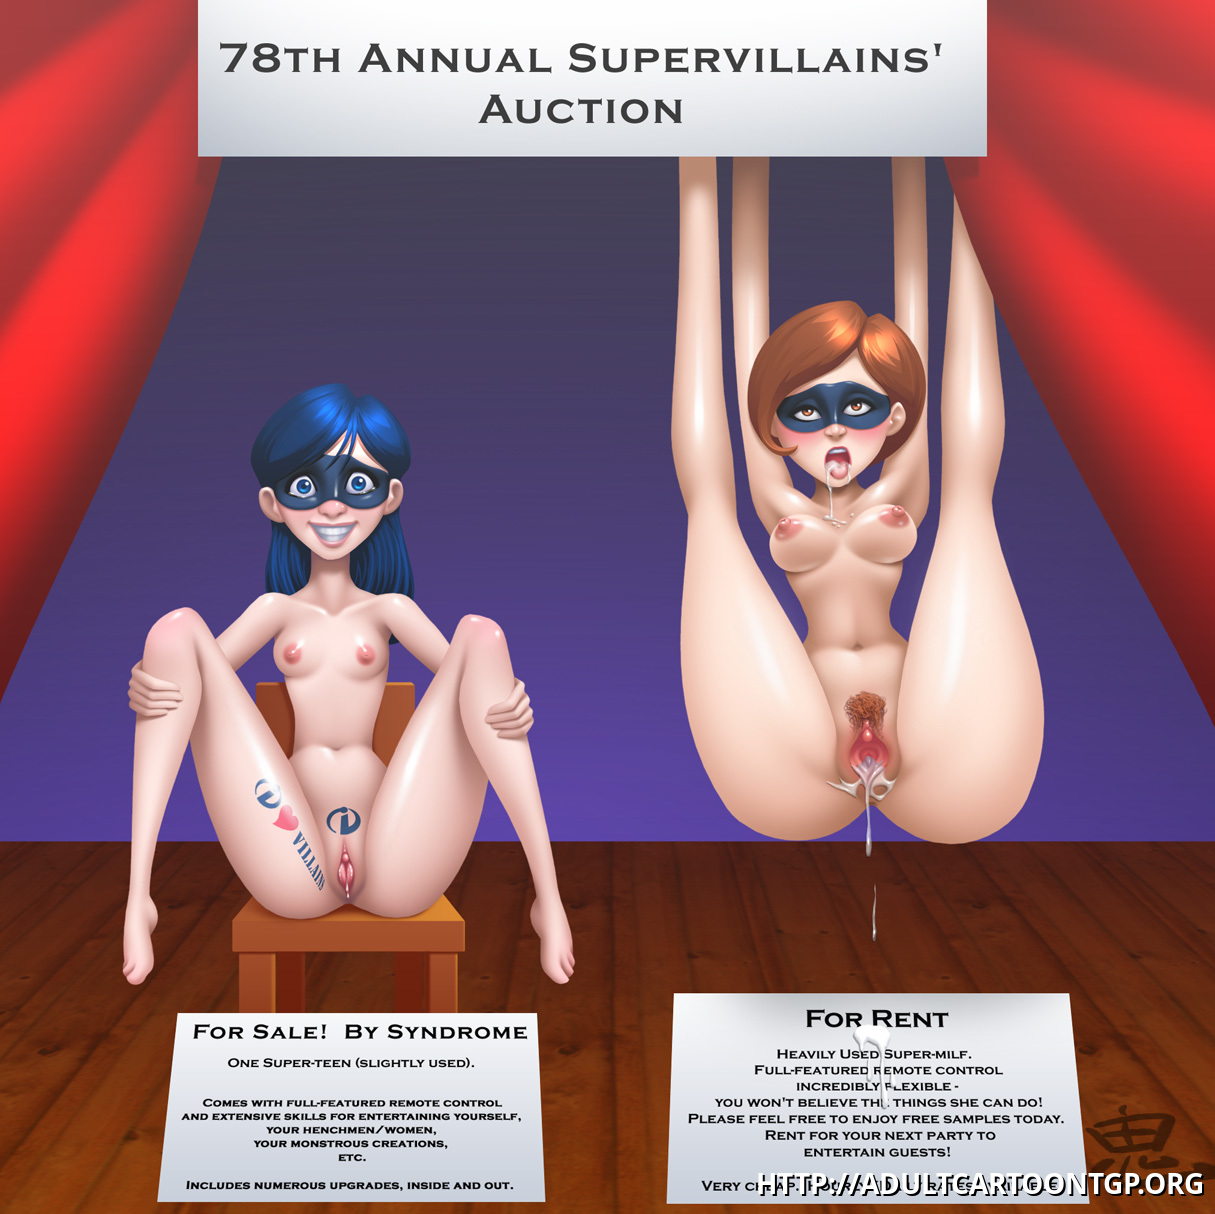 Violet and Helen - the most incredible lots of 78th Supervillains' Auction for sure!